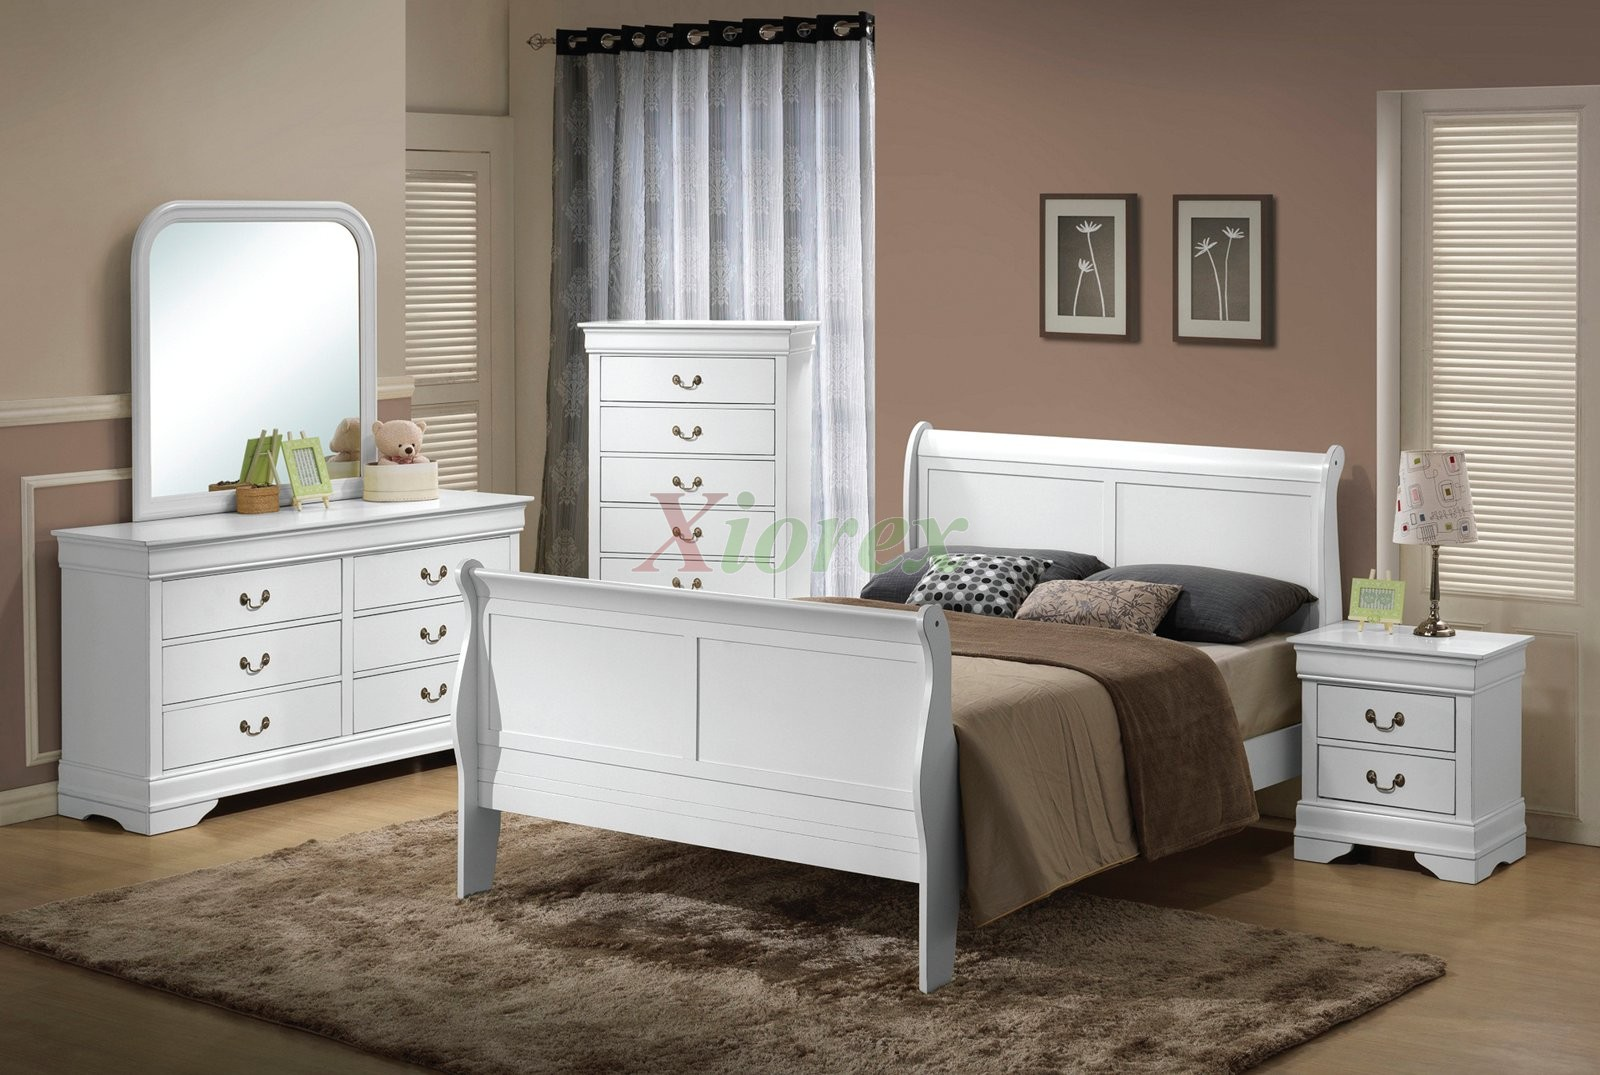 Cool ... Semi Gloss Sleigh Like Bedroom Furniture Set 170 In Cherry Black white bedroom furniture sets